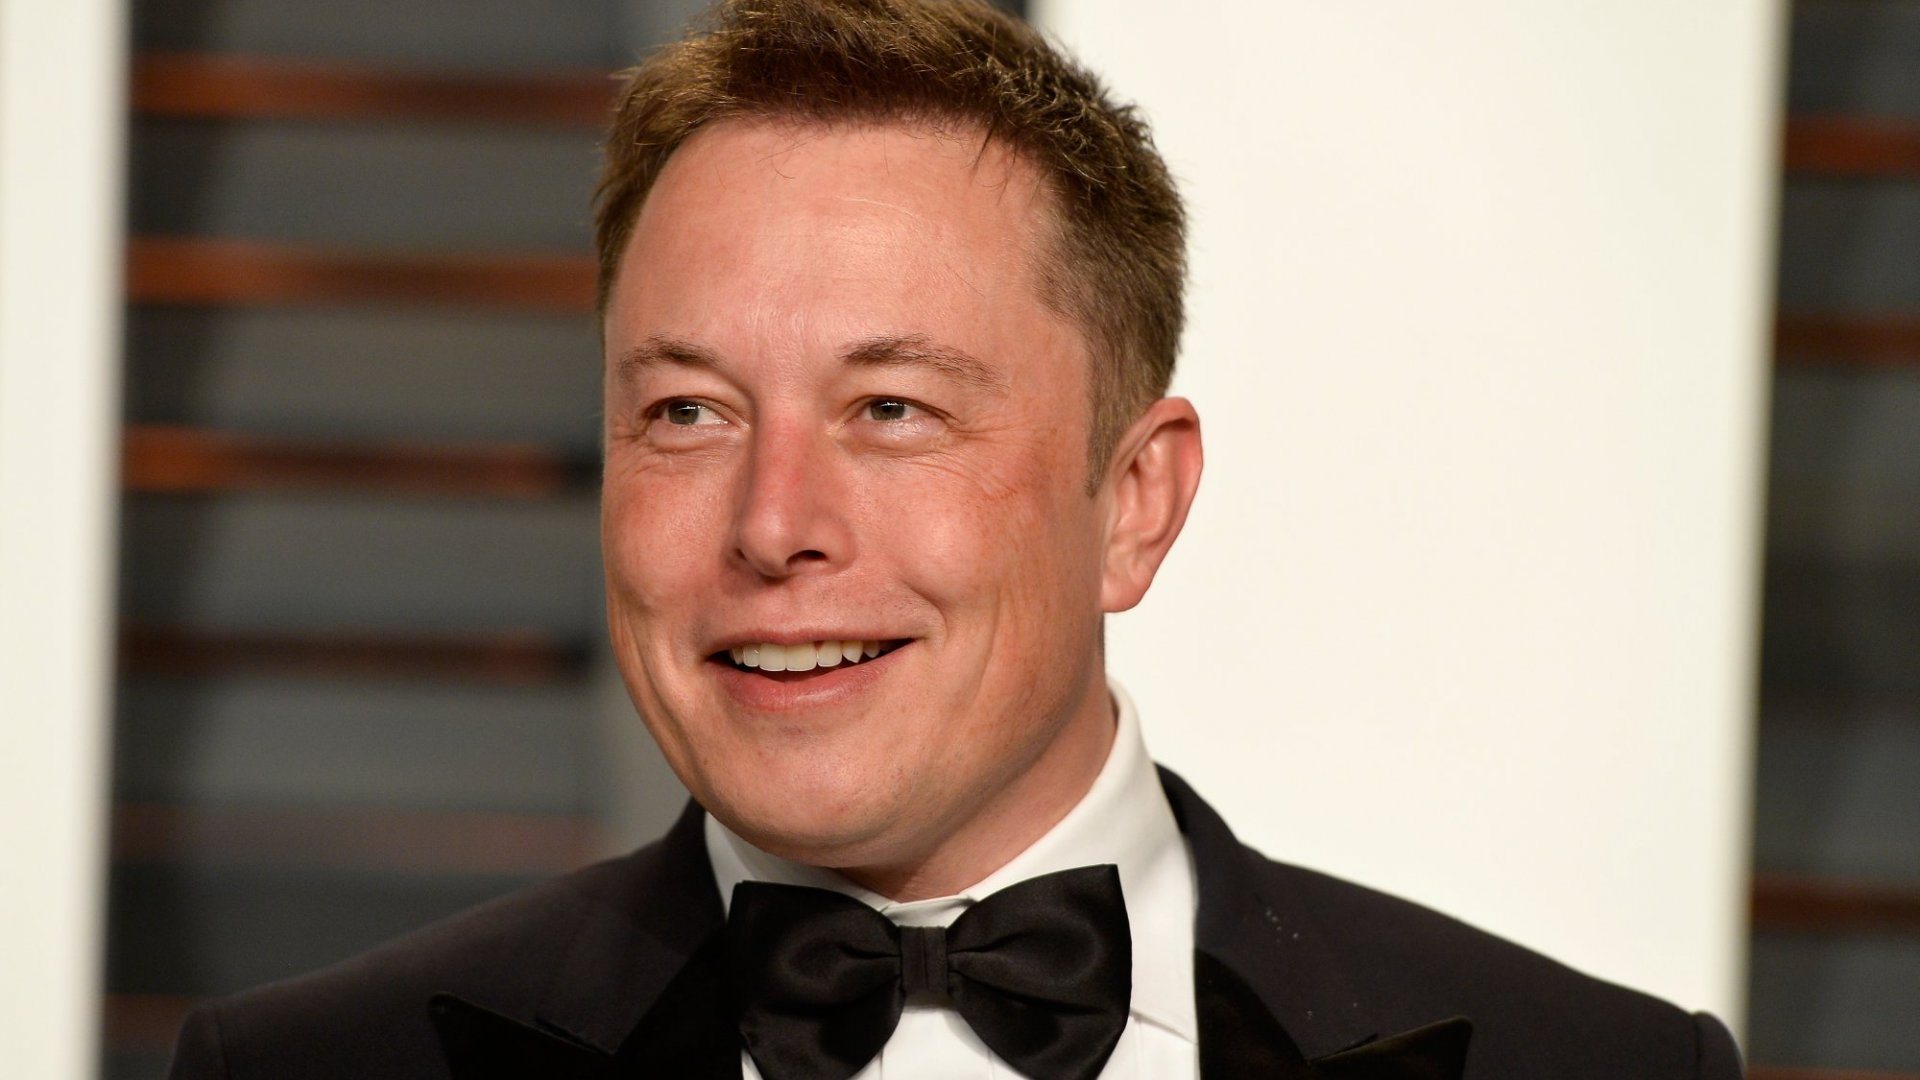 Here's How Elon Musk Got His Groove Back and Turned Tesla's Image Around